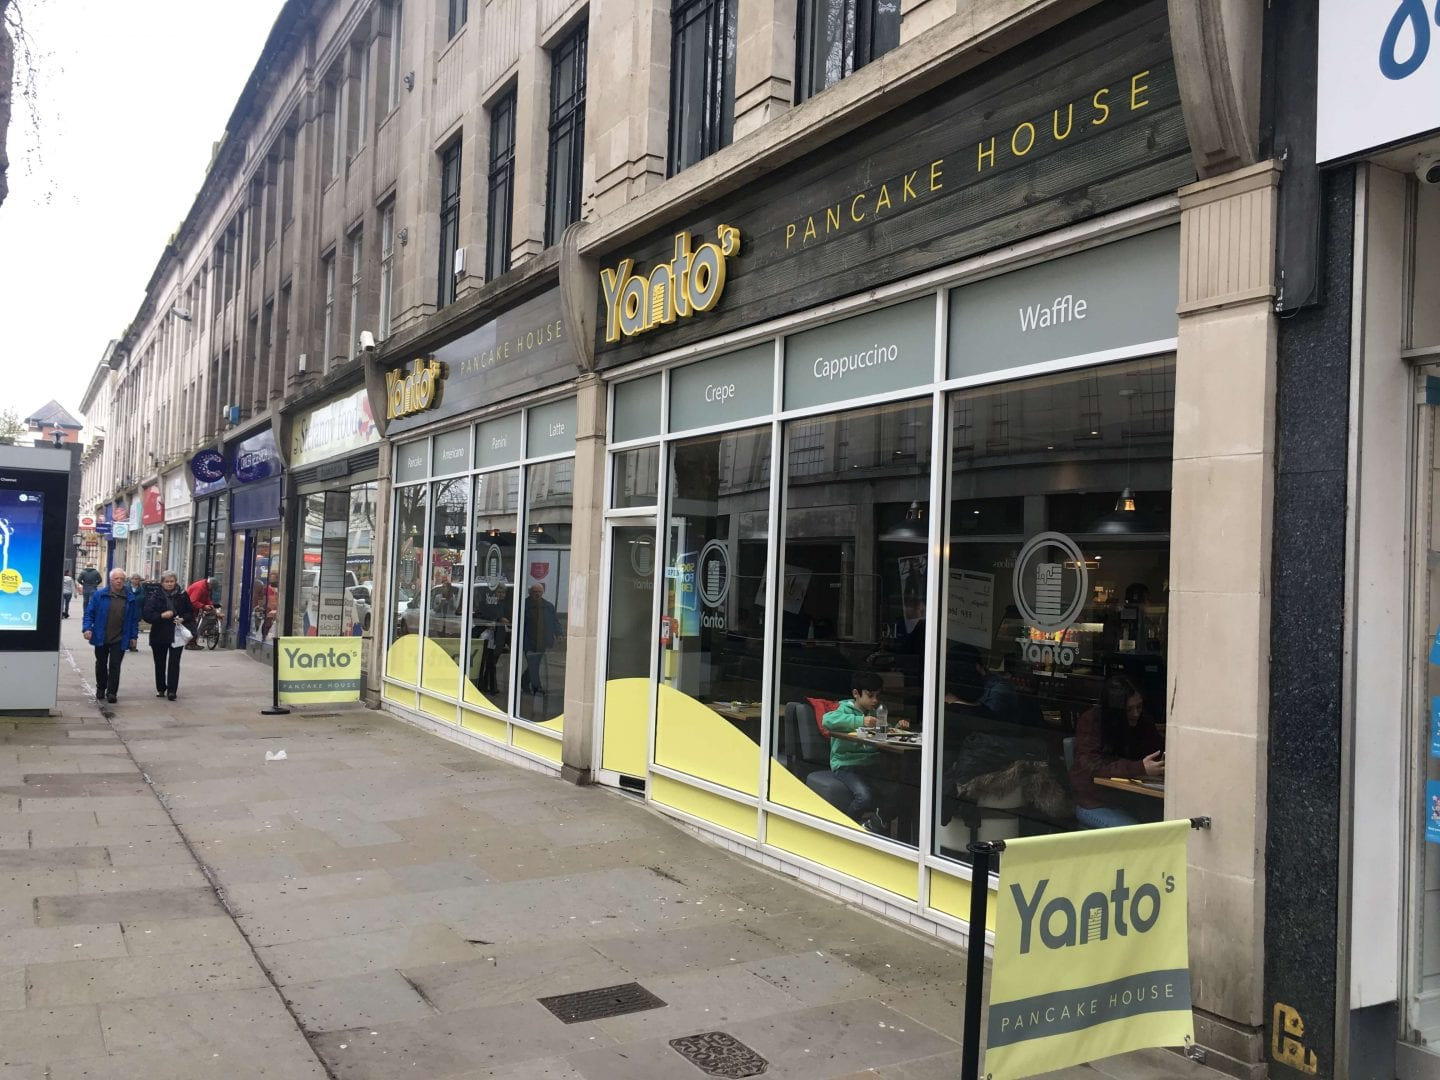 Yanto's Pancake House, The Oxebode, Gloucester GL1 1RZ